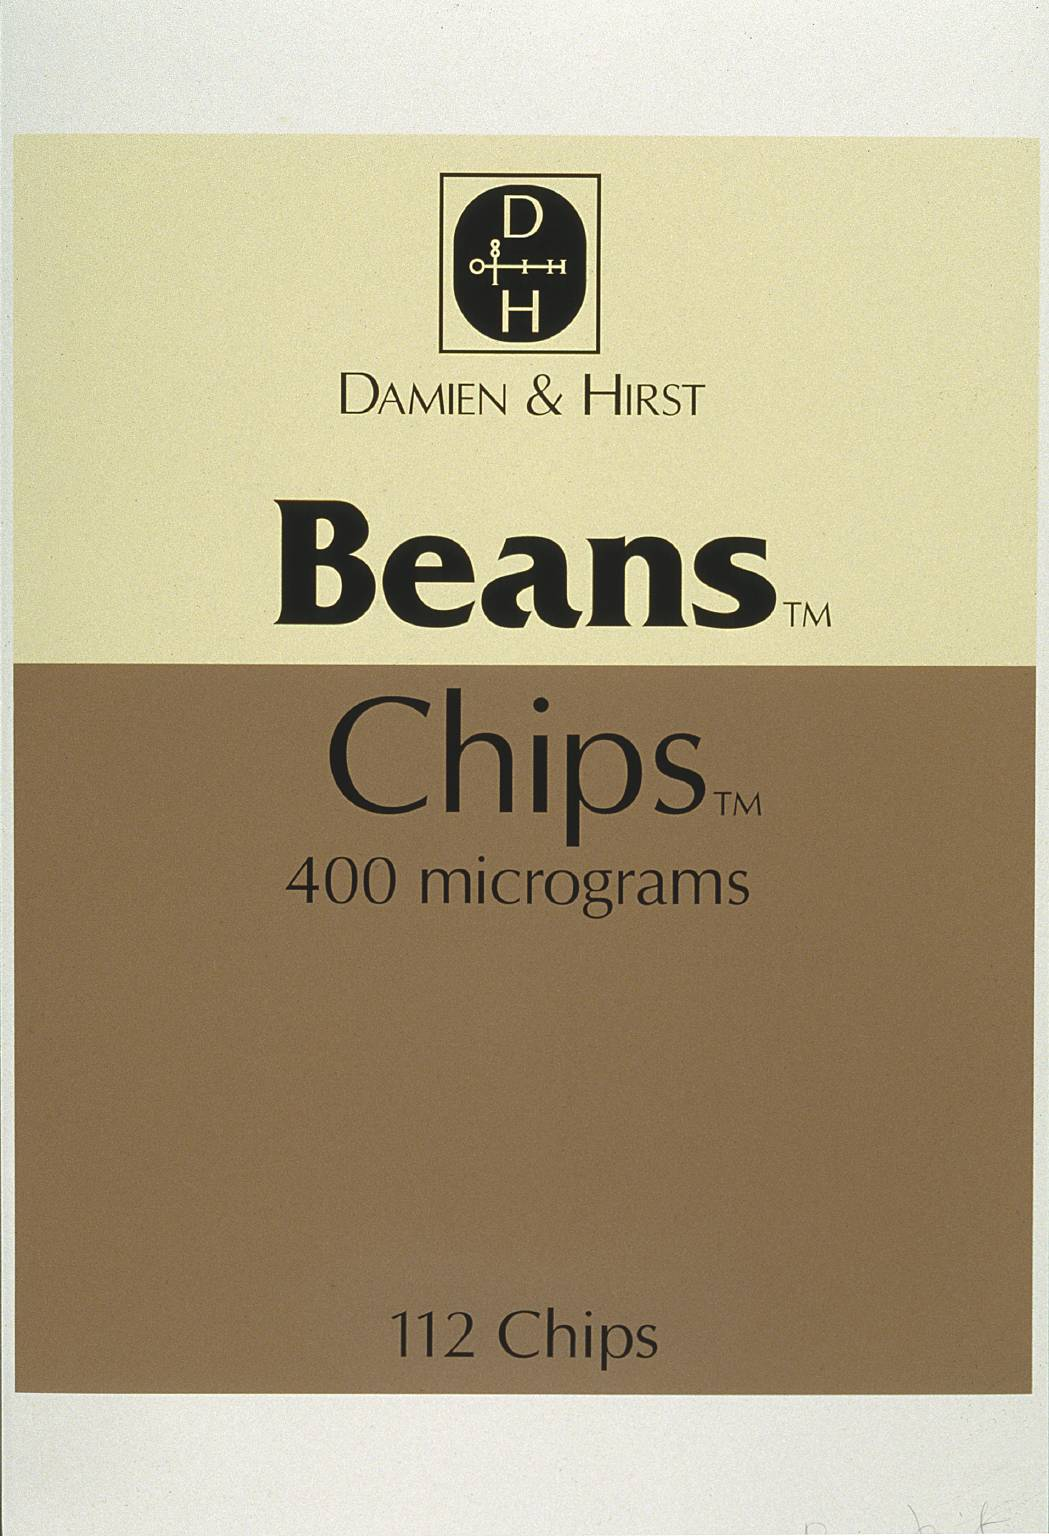 Beans and Chips, from The Last Supper